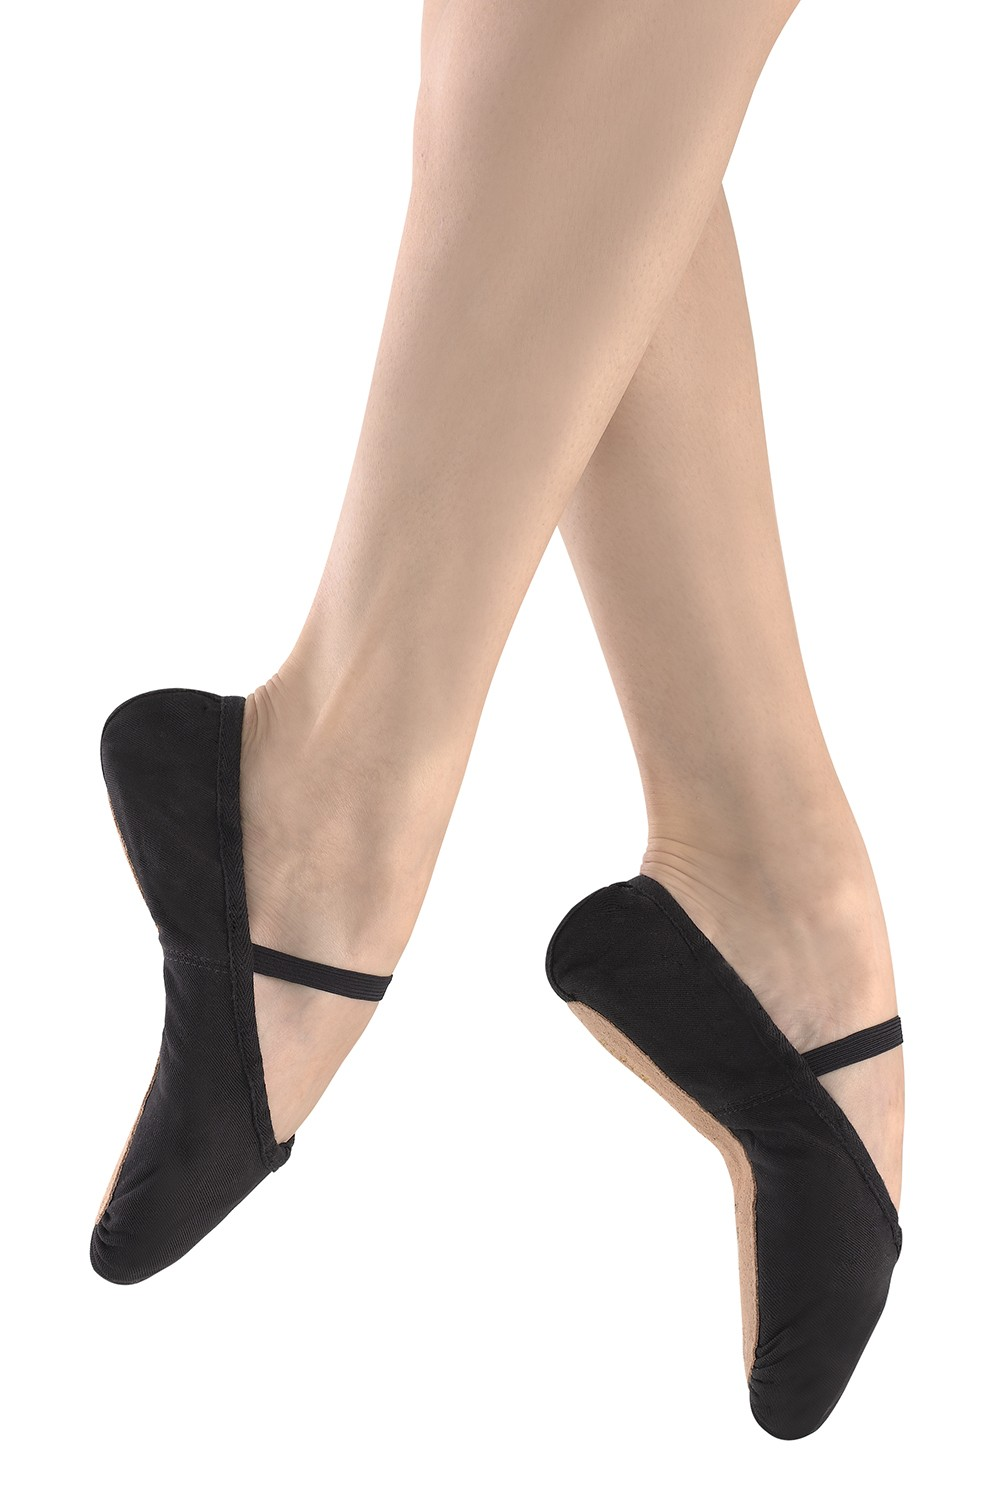 S0212l Women's Ballet Shoes